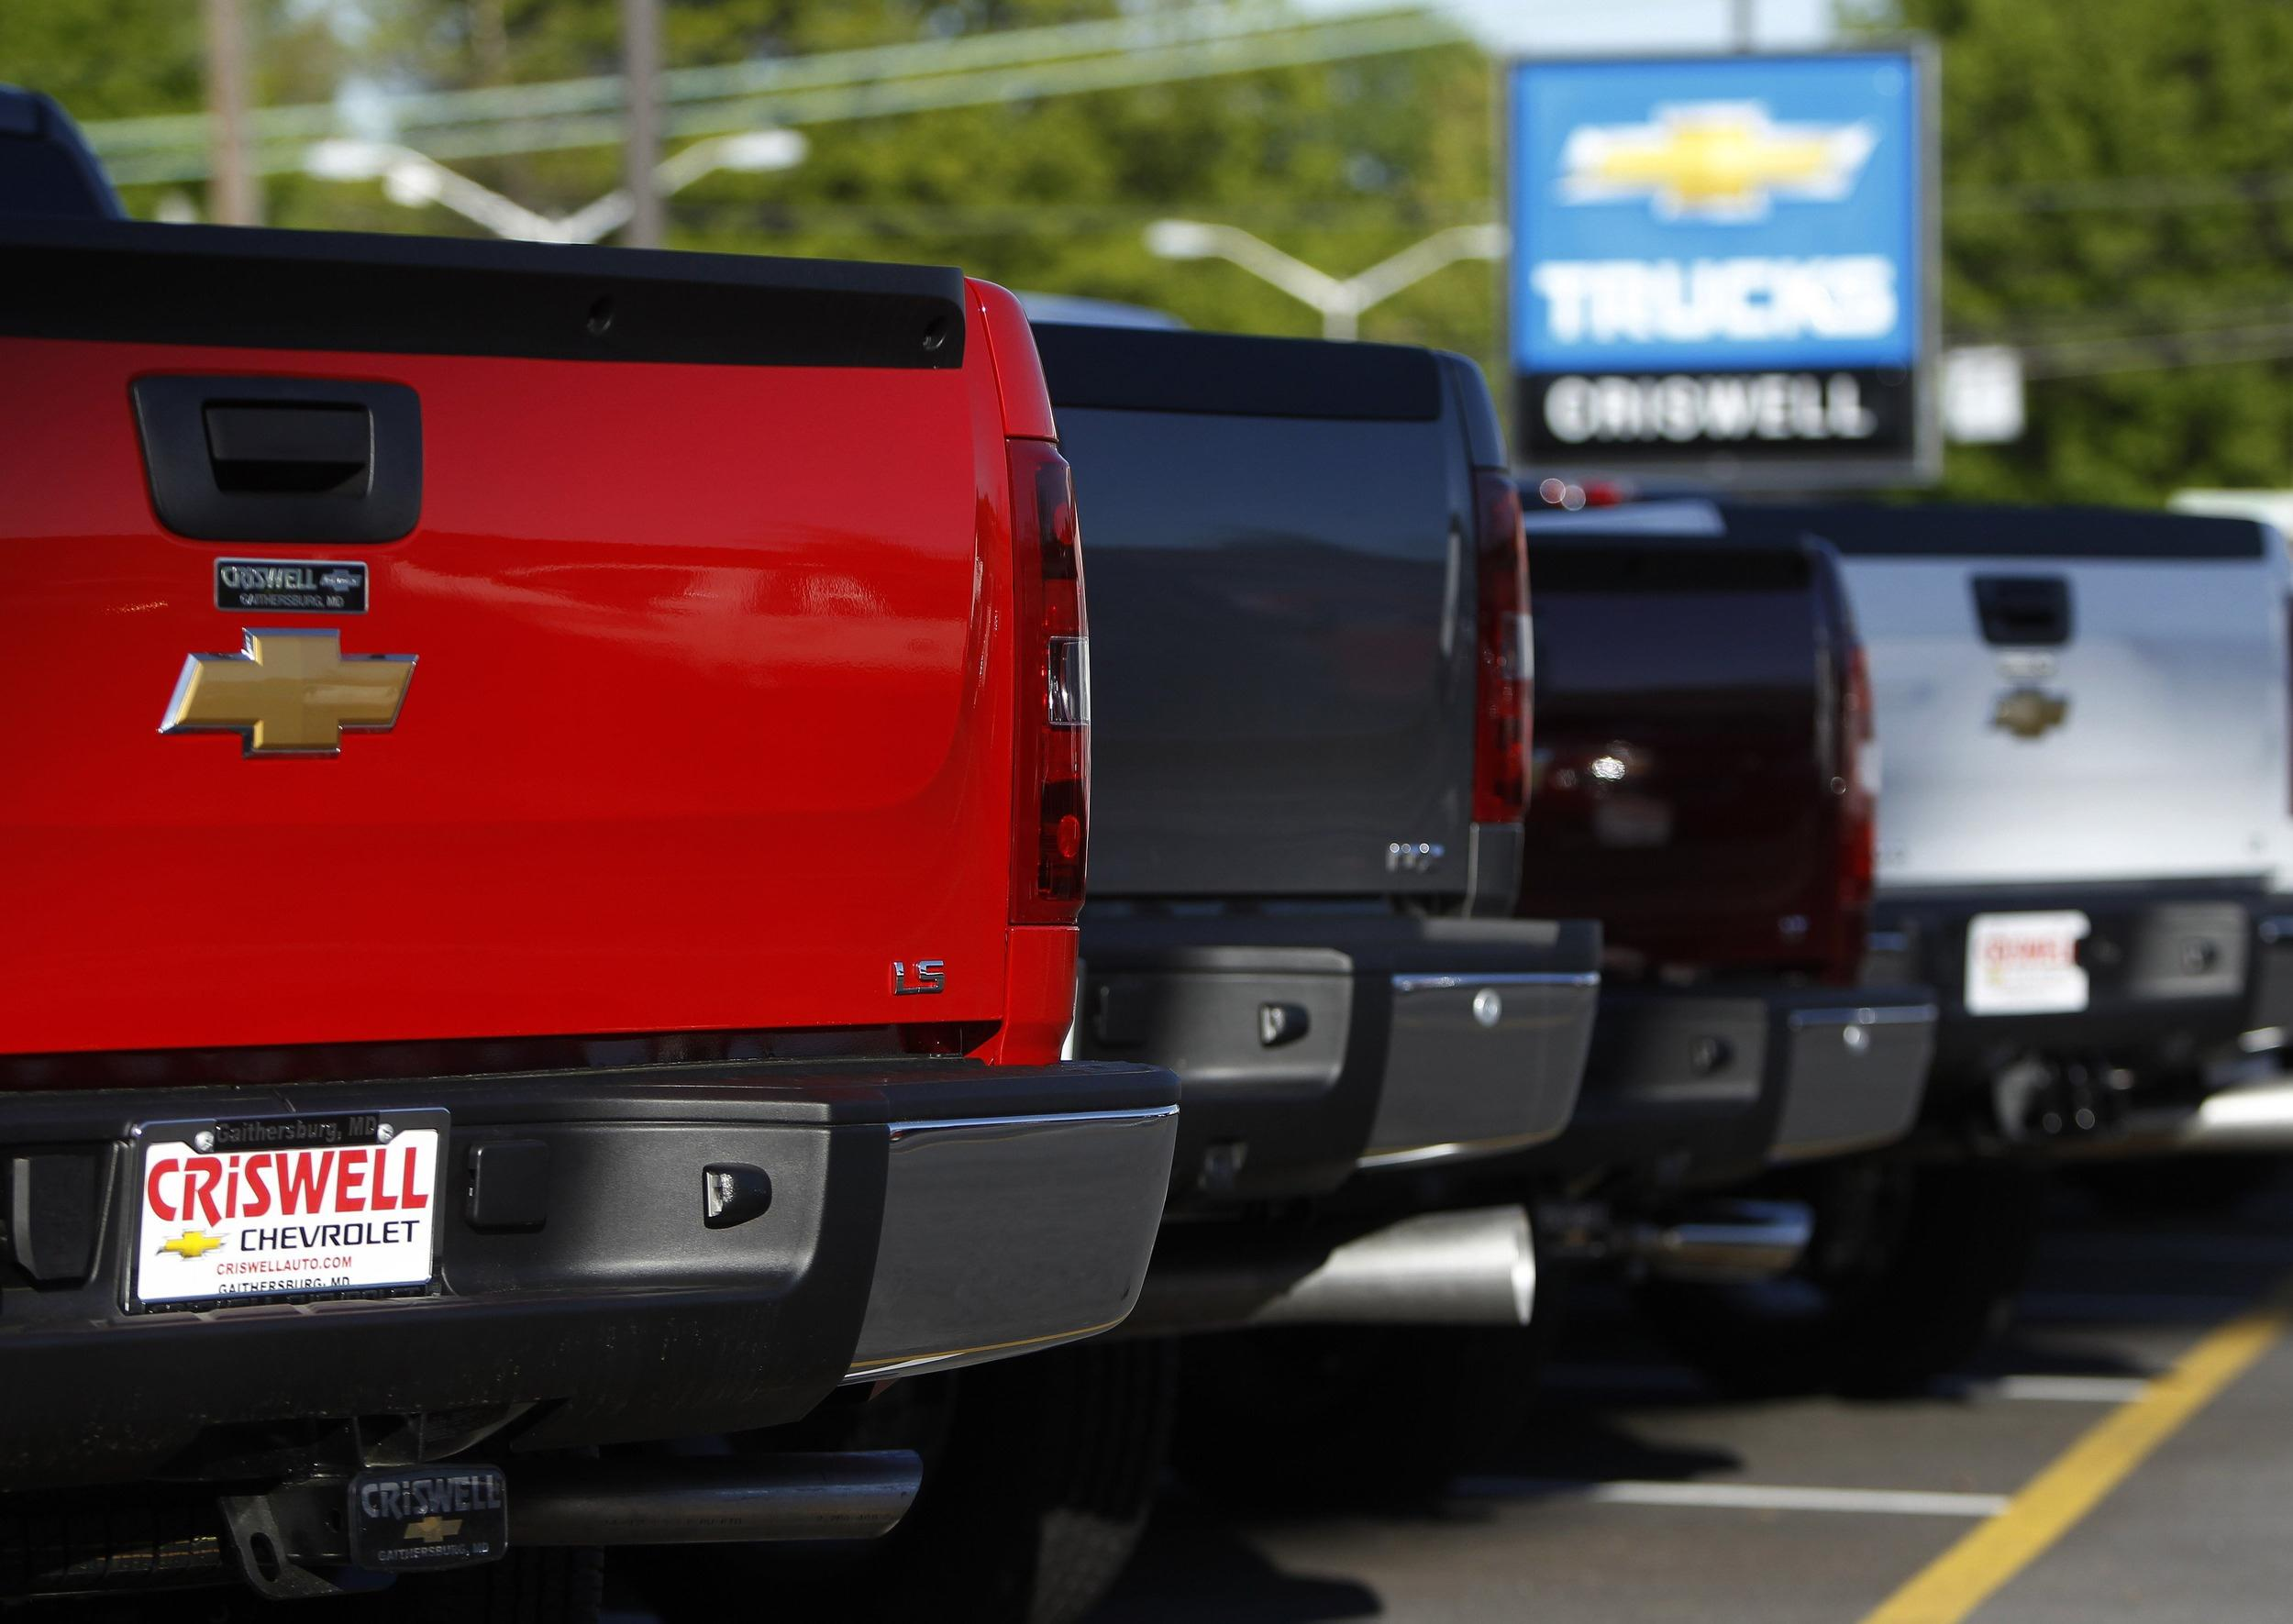 General Motors' sales jumped 12.6% in May, a sign the automaker is driving away from the setback of recalling millions of vehicles.